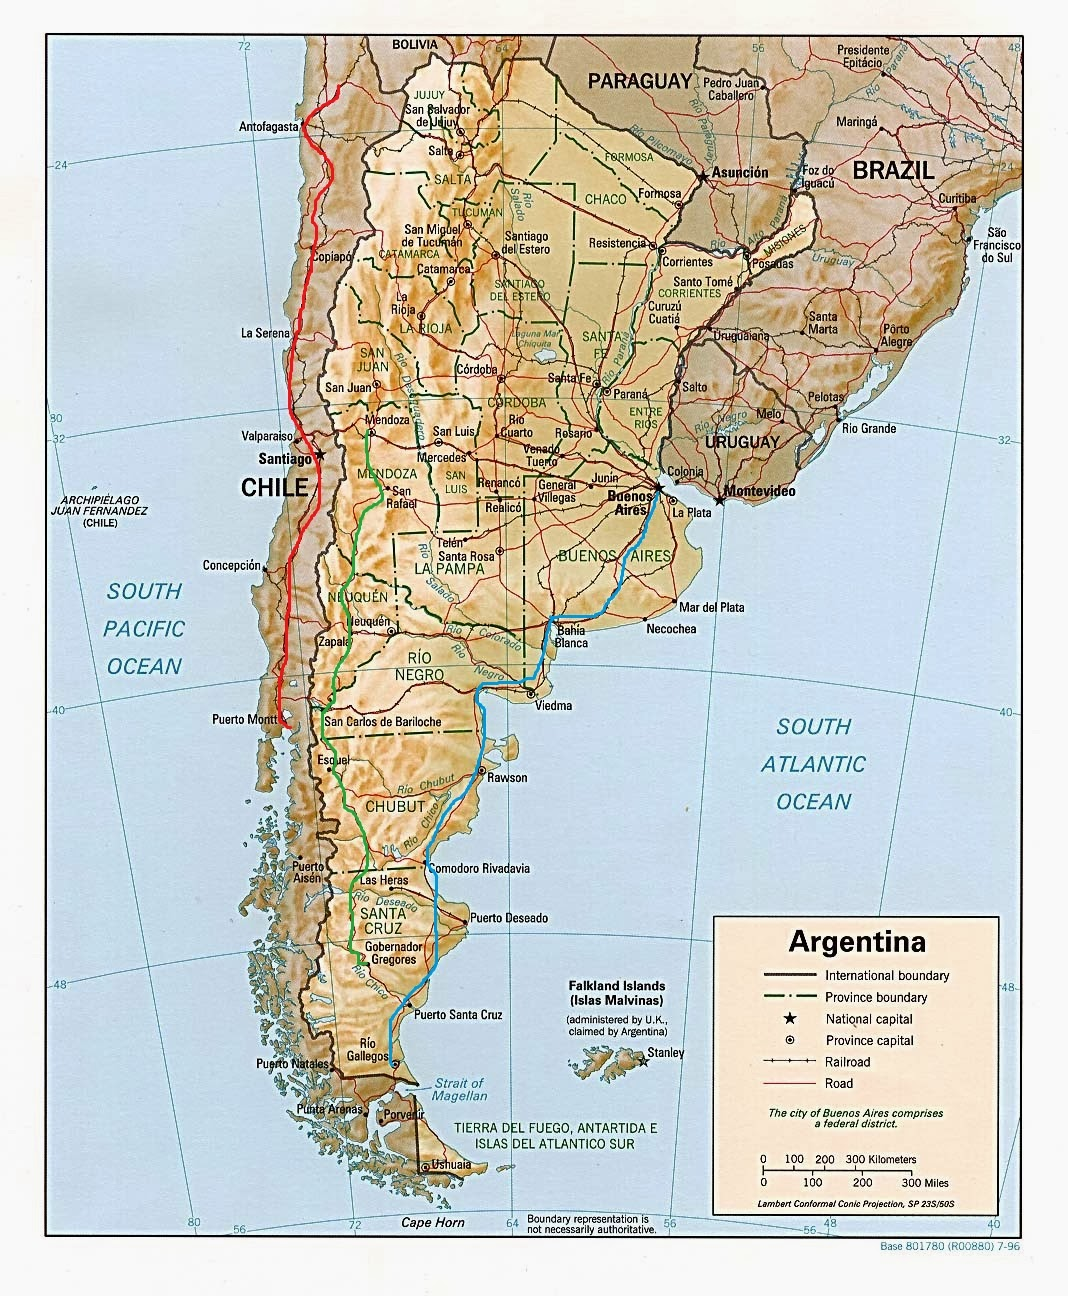 Road Trip Across South America: Travelling cheap in ... Base Map Of Argentina And Chile on large map of chile, ecuador and chile, people from chile, detailed map of chile, political leader of chile, political map of chile, street map of villarrica in chile, map of nuclear power plants in the world, map of chile with cities, map of el cono sur, map of chile coast, map show patagonia, map of southern chile, map of patagonia chile, map of copiapo chile, printable map of chile, map chile argentina border, map of chile and hawaii, map of peru, map of patagonia region,